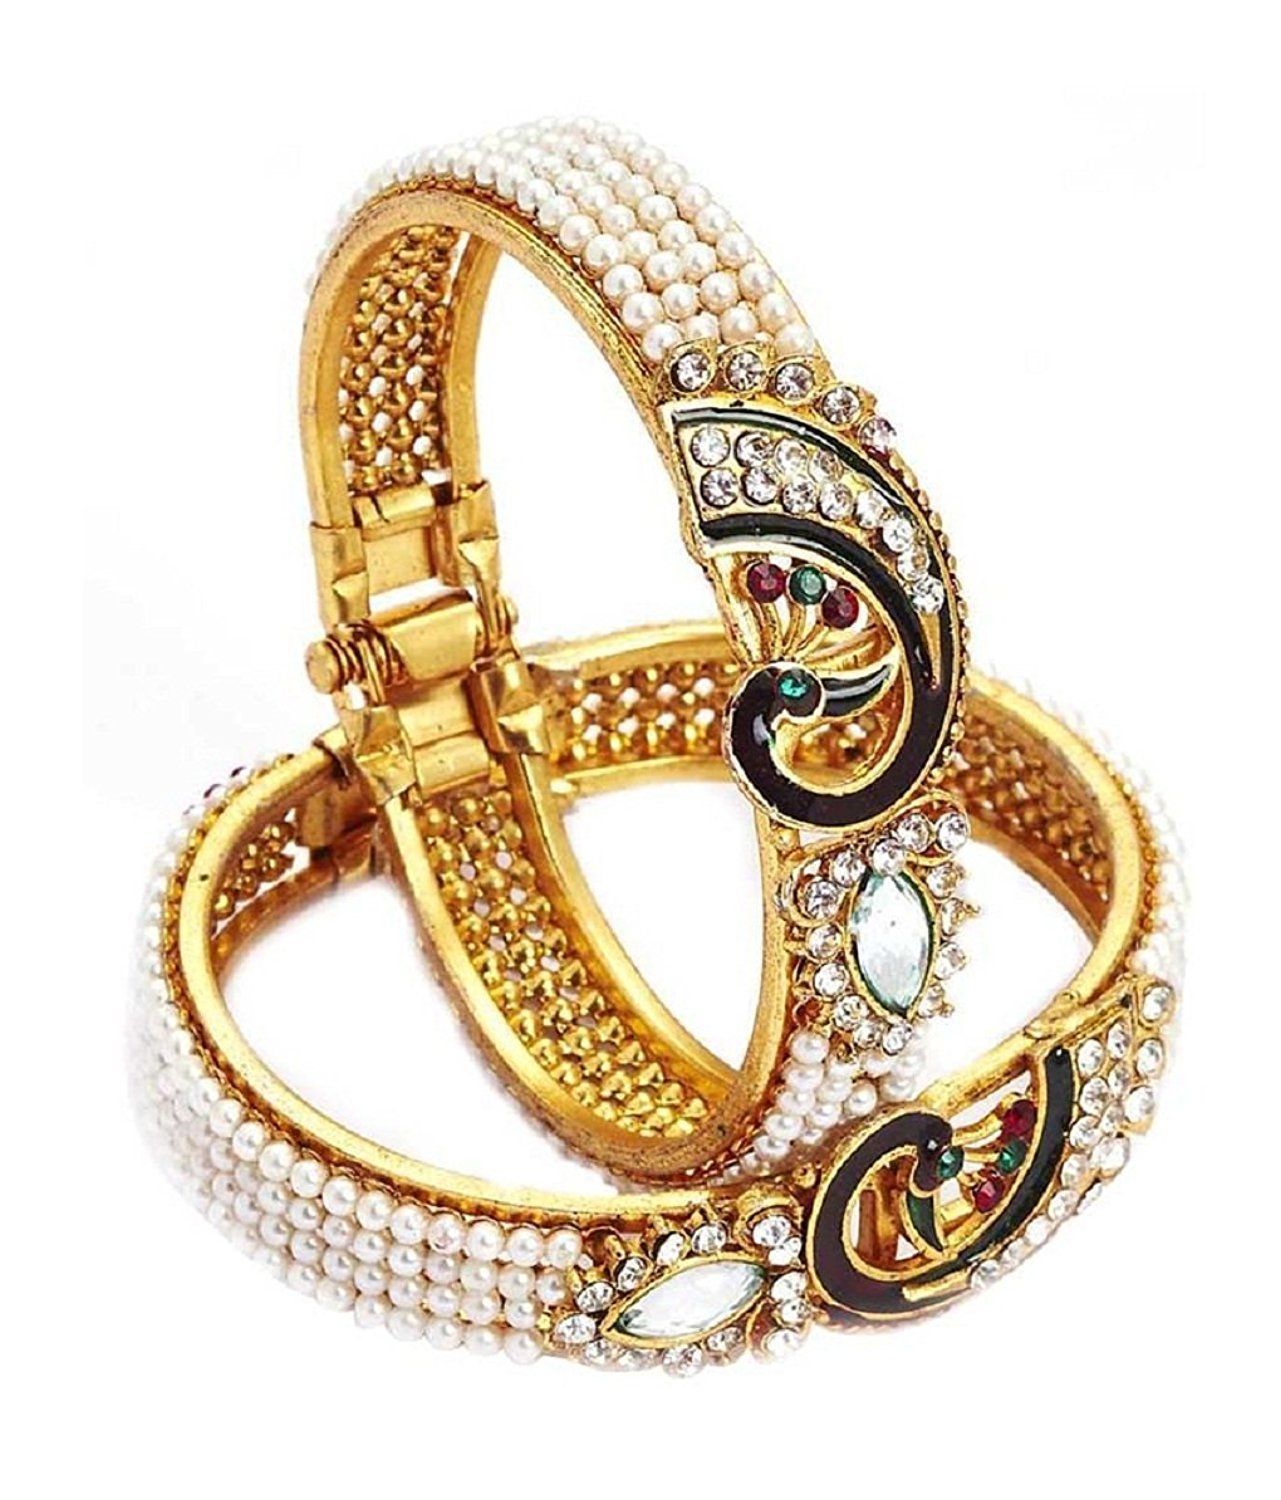 Buy fashionable bracelets online for women in india at competitive